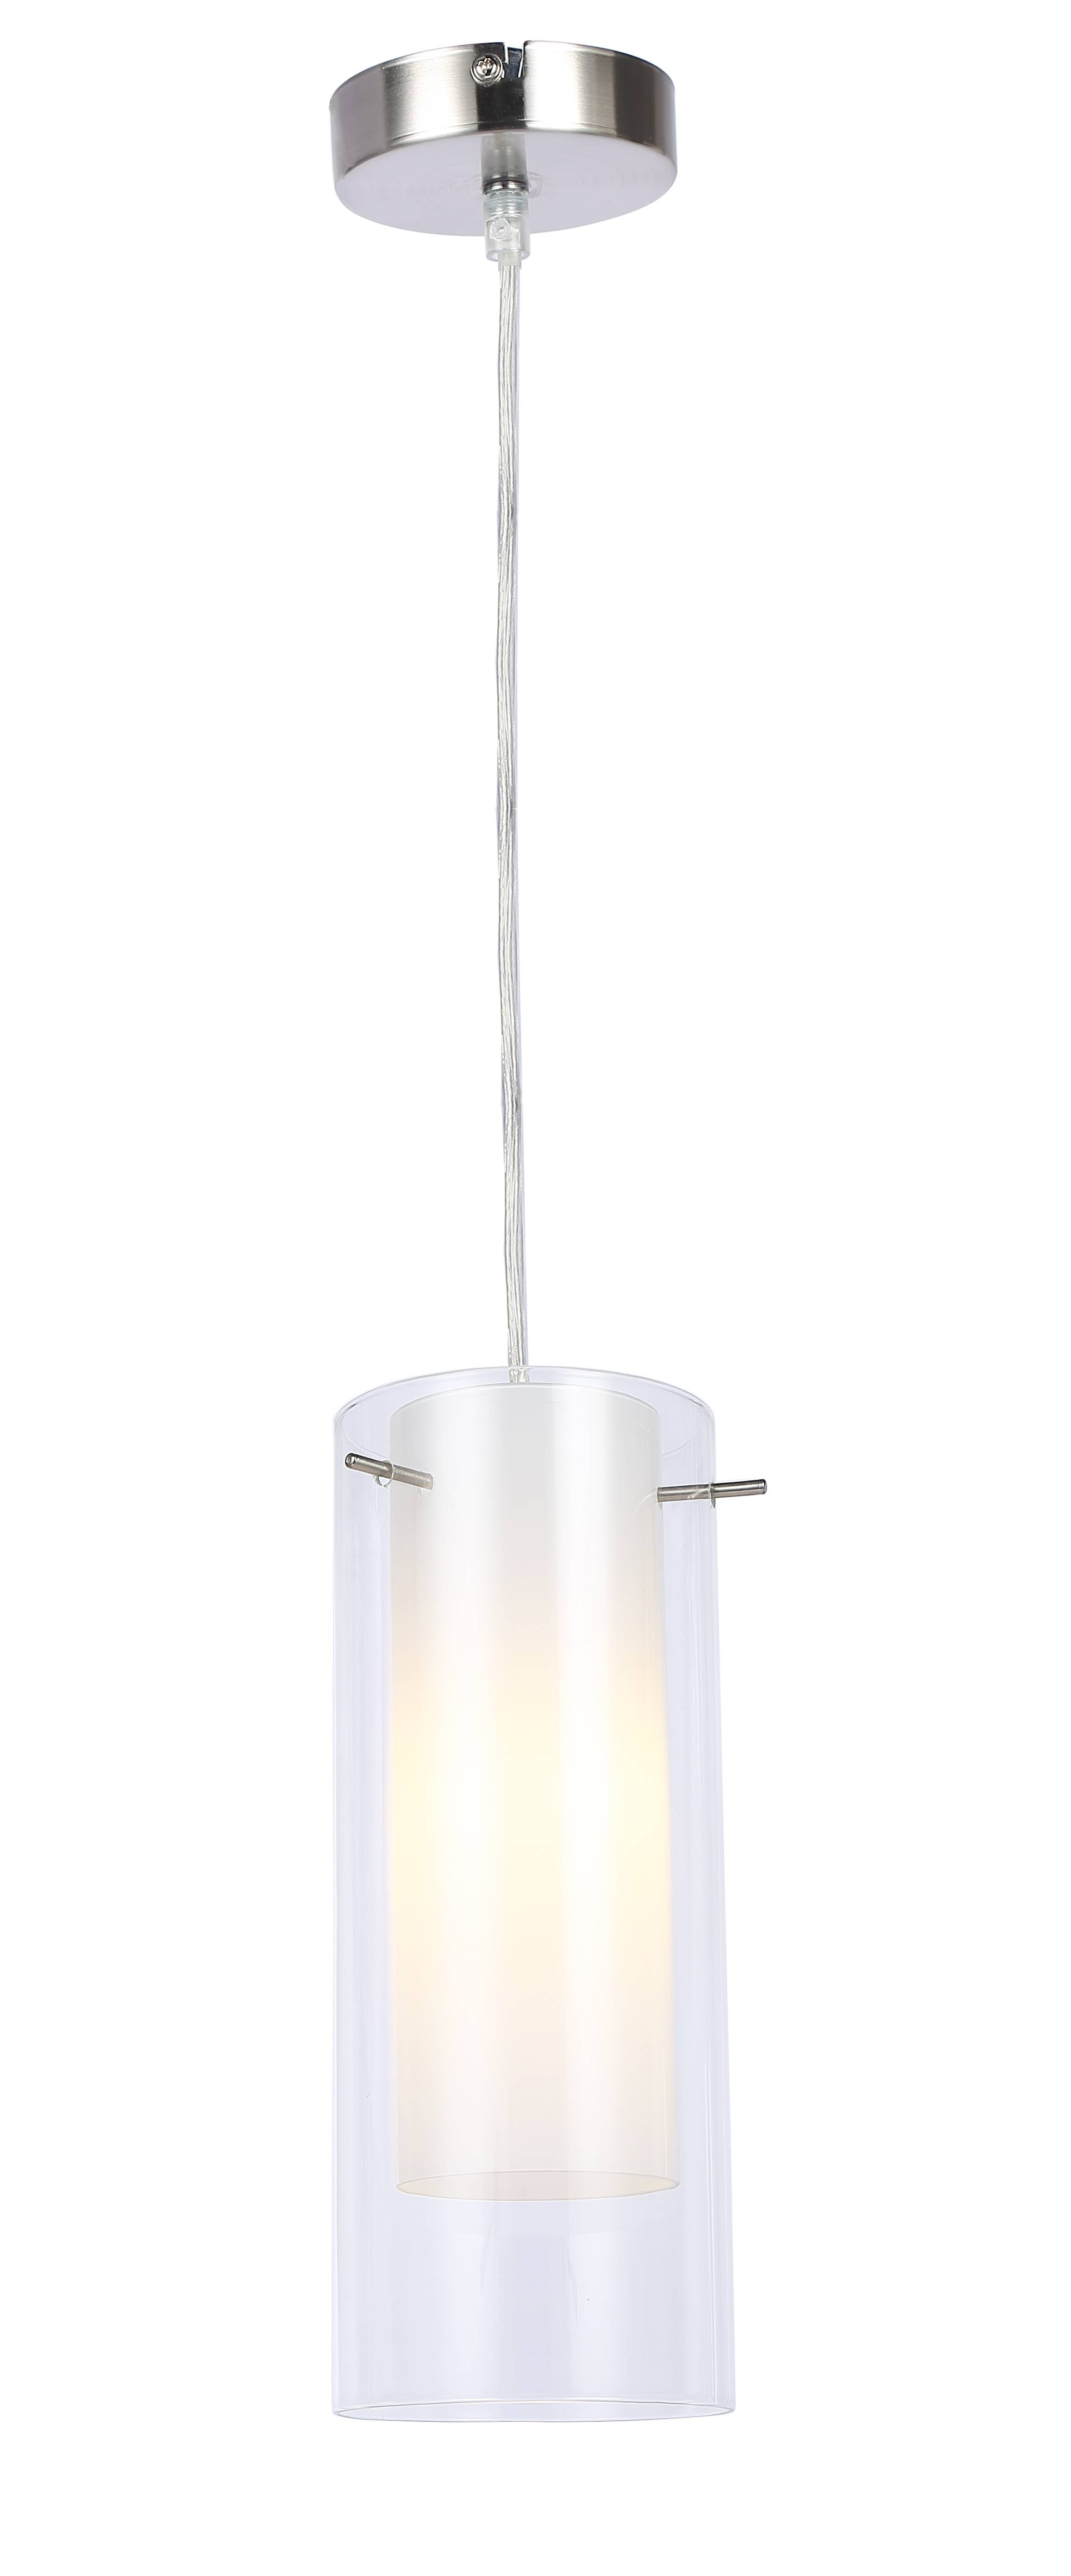 New Double Glass Shade Ceiling Pendant Light (14239)Www.ukew.co (View 8 of 15)